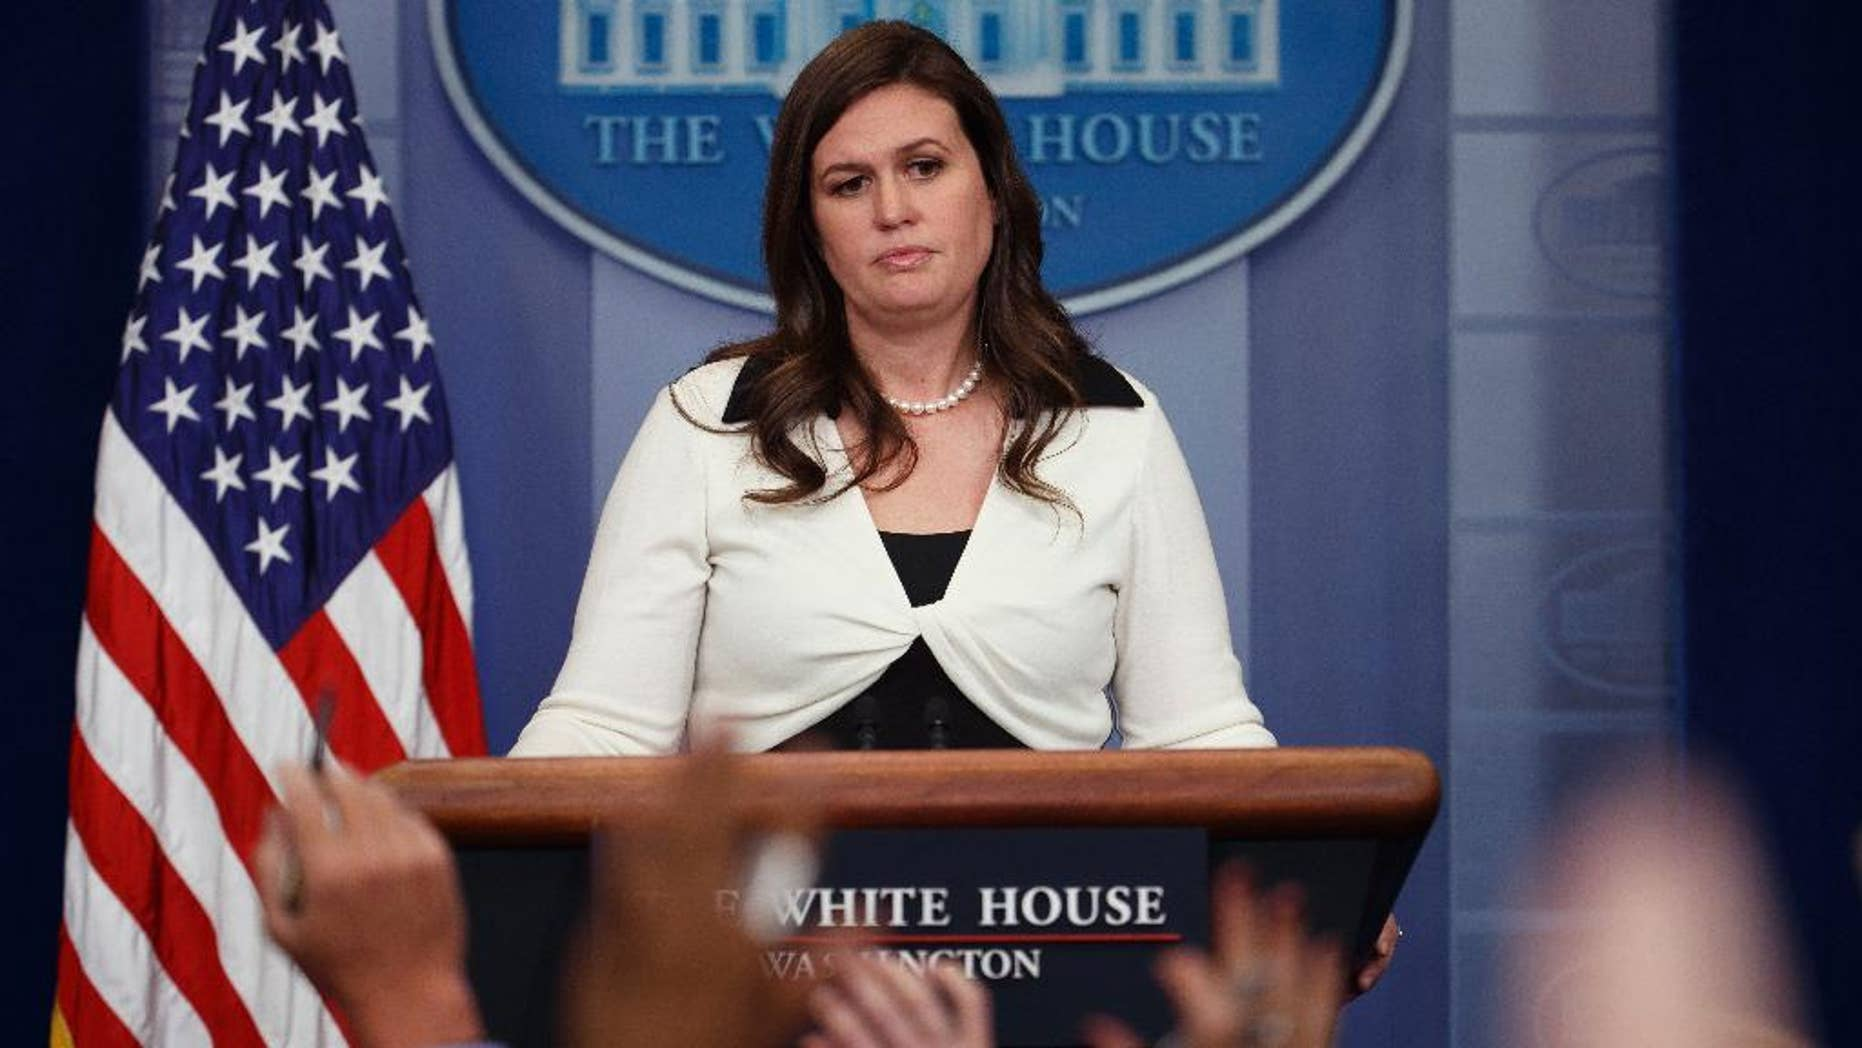 White House deputy press secretary Sarah Huckabee Sanders addresses reporters. Audio and video recordings have been prohibited at daily briefings since June 29.